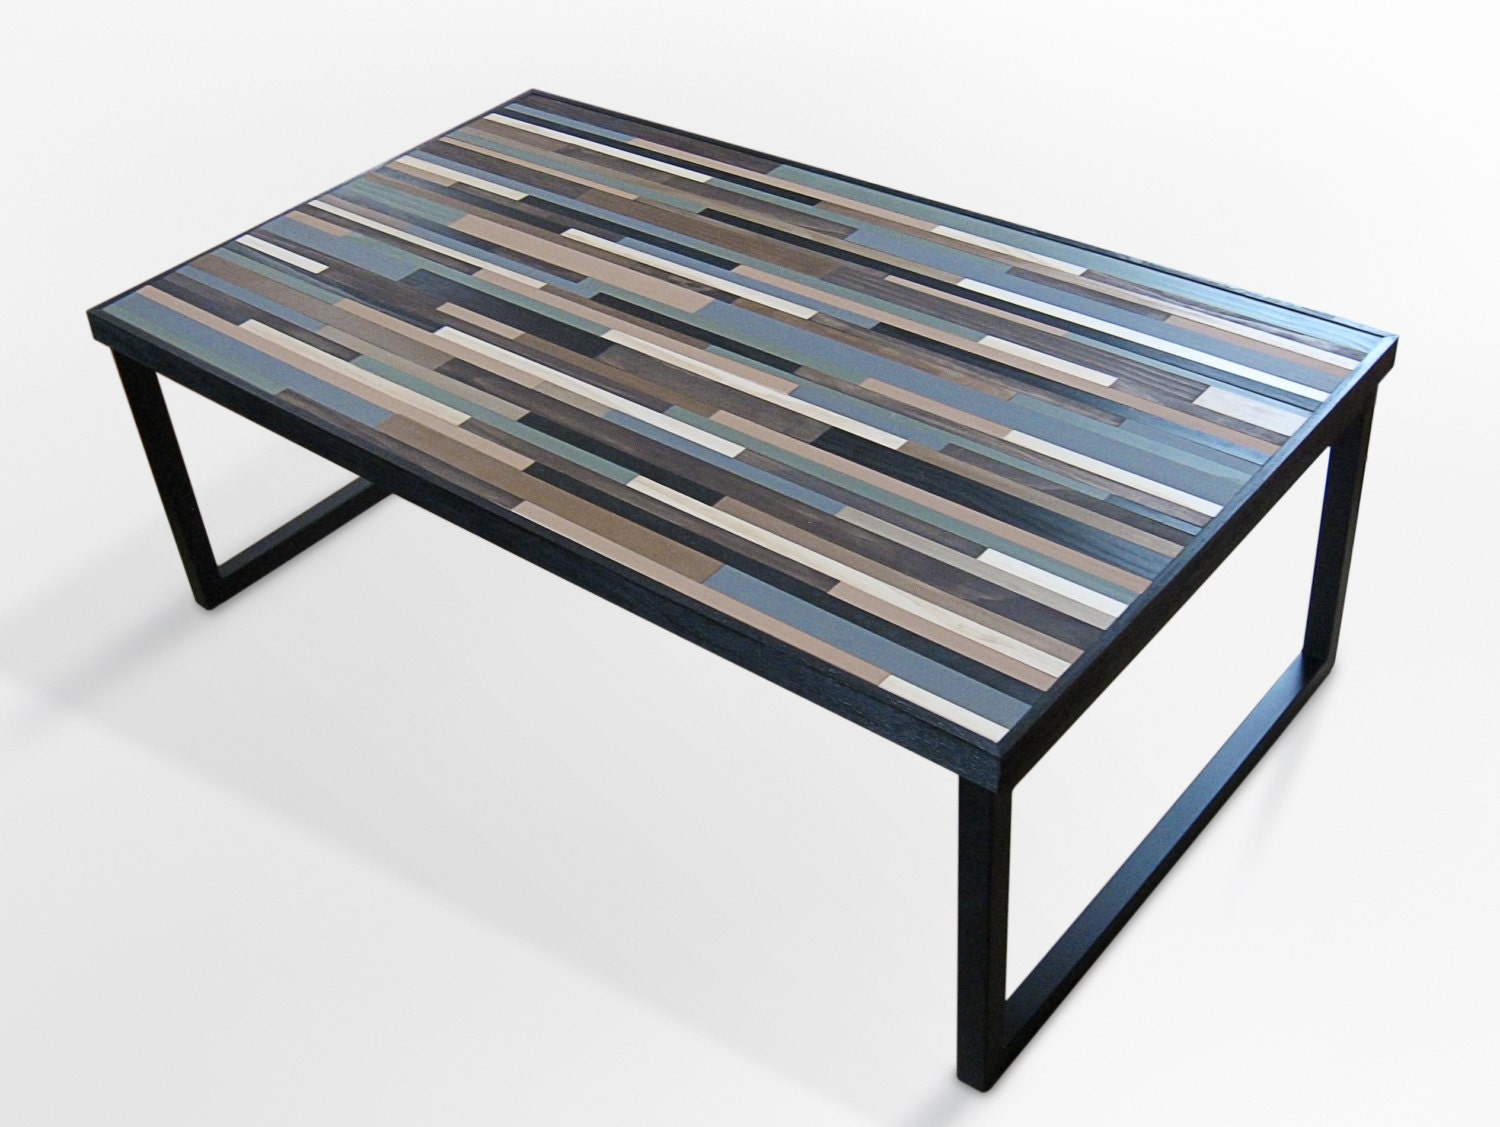 Reclaimed wood table modern industrial wood coffee table with Industrial metal coffee table